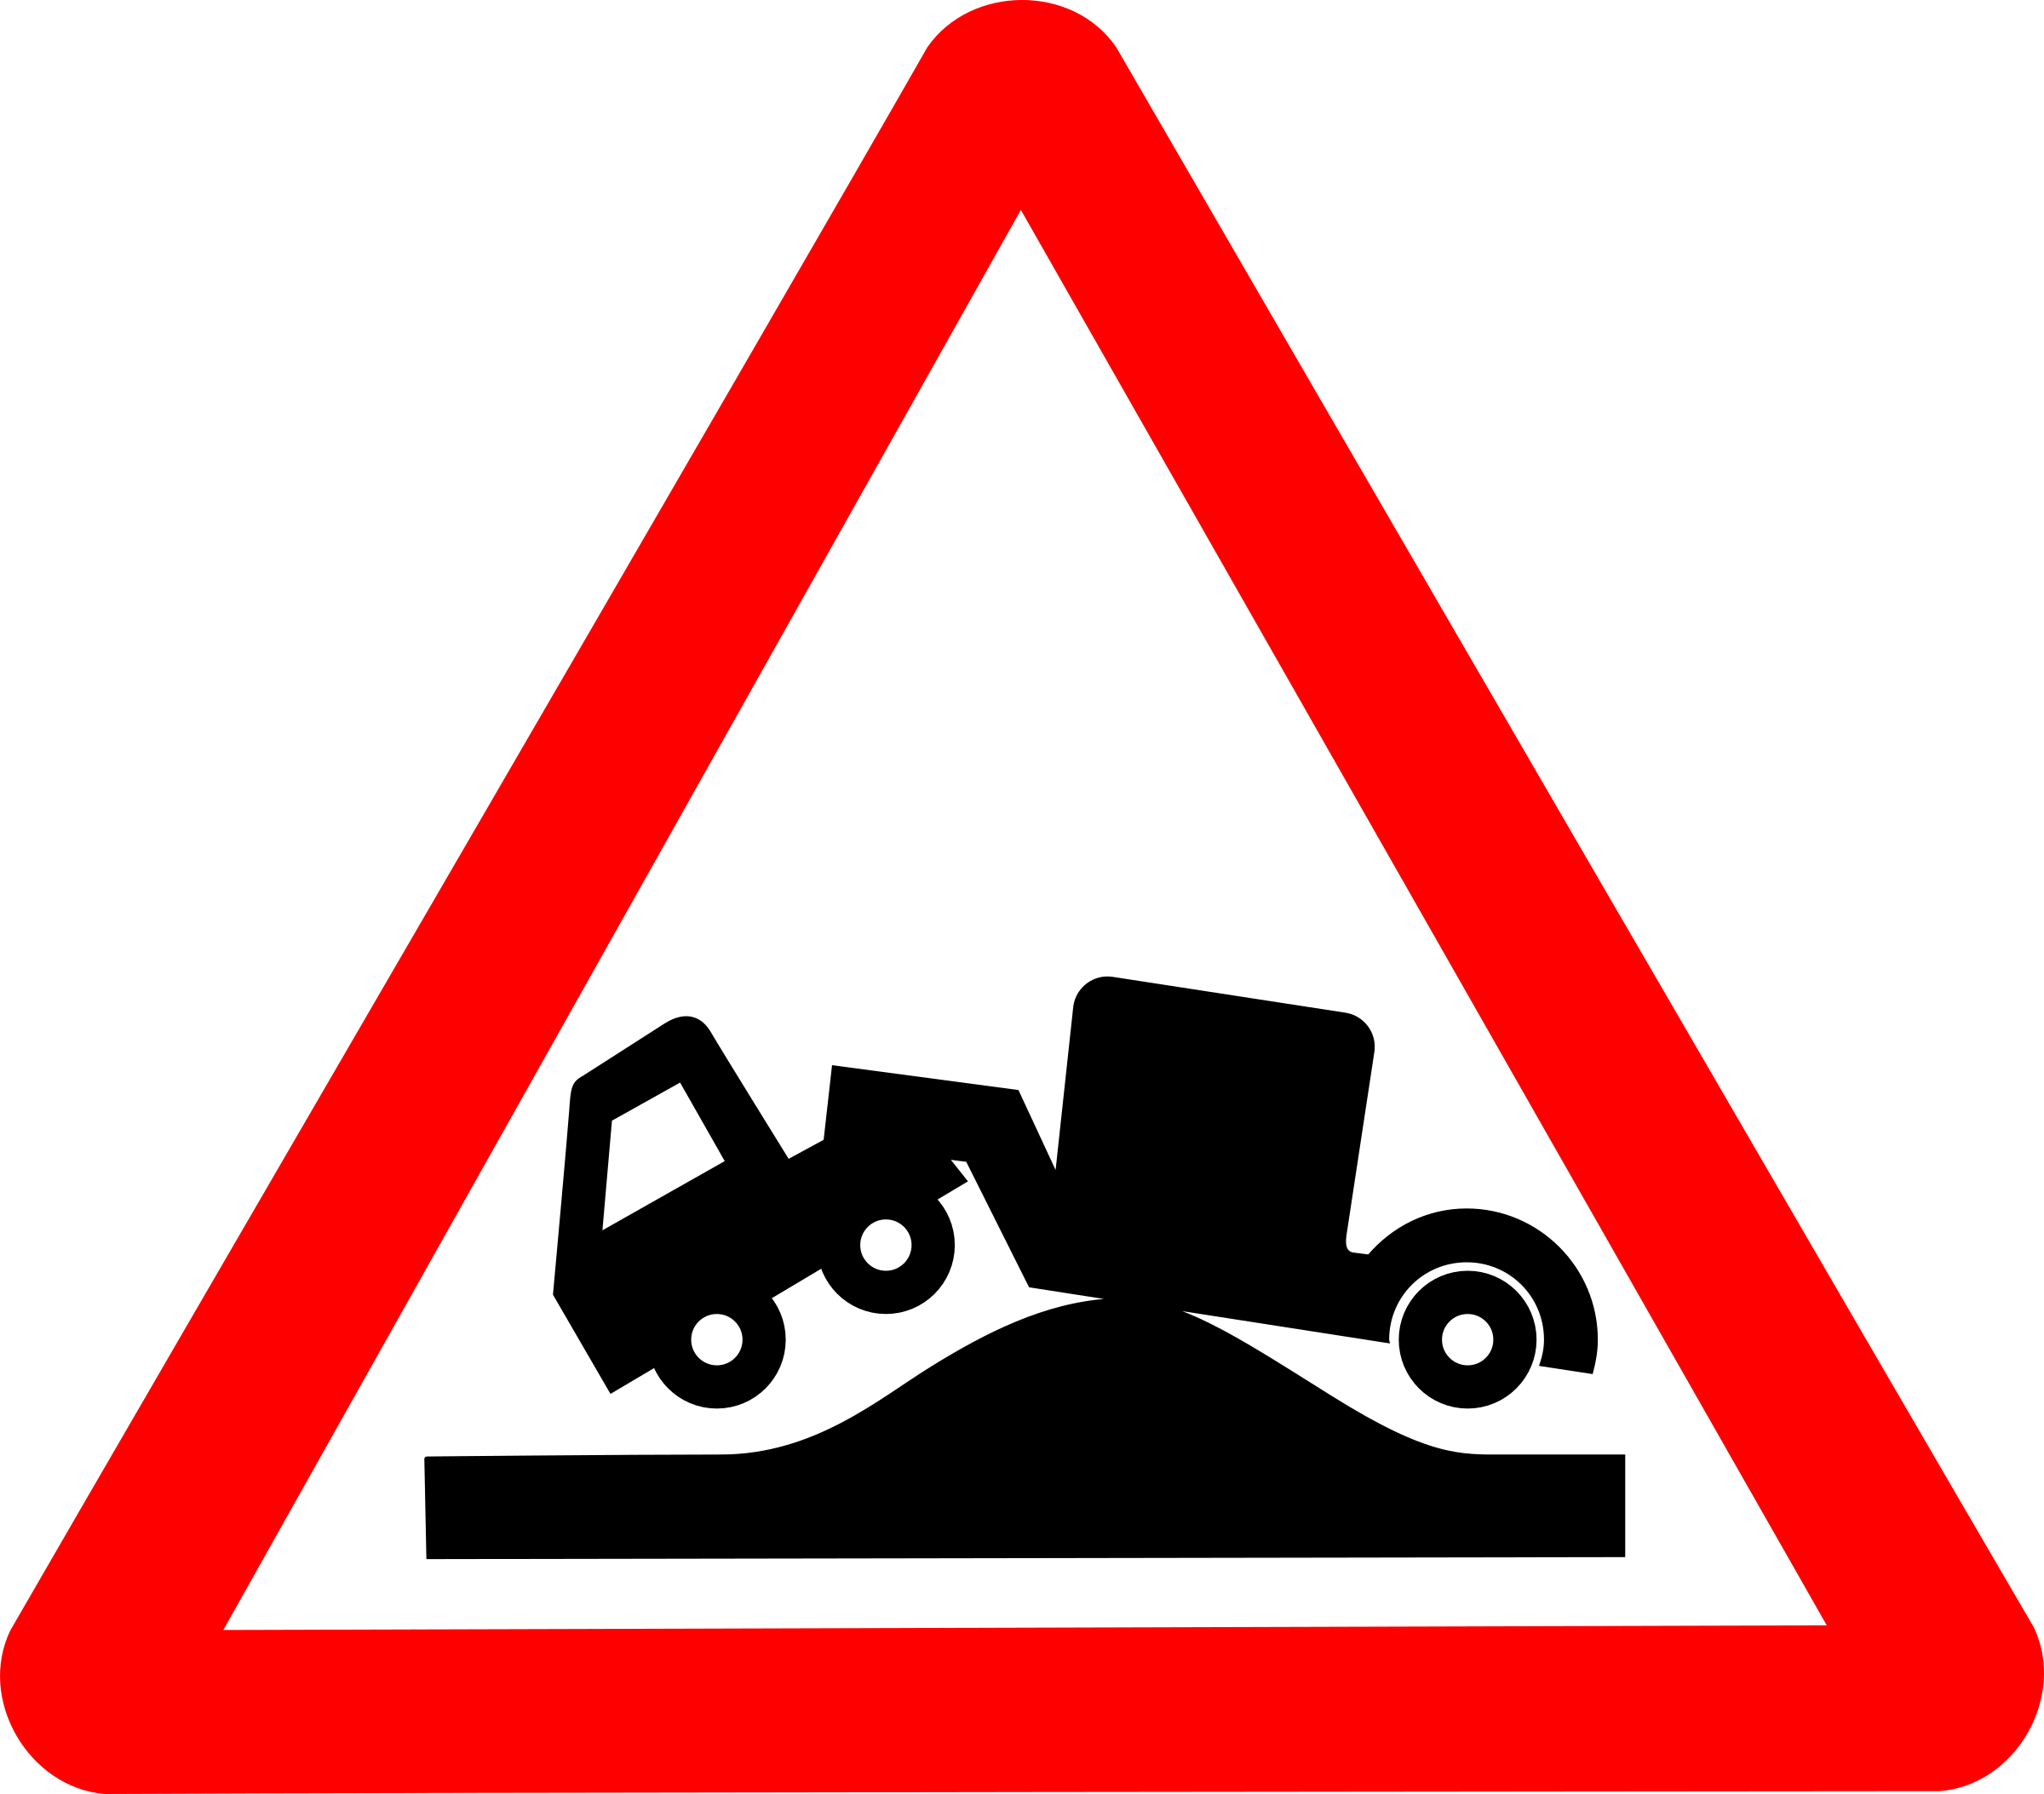 Roadsign grounded by Simarilius